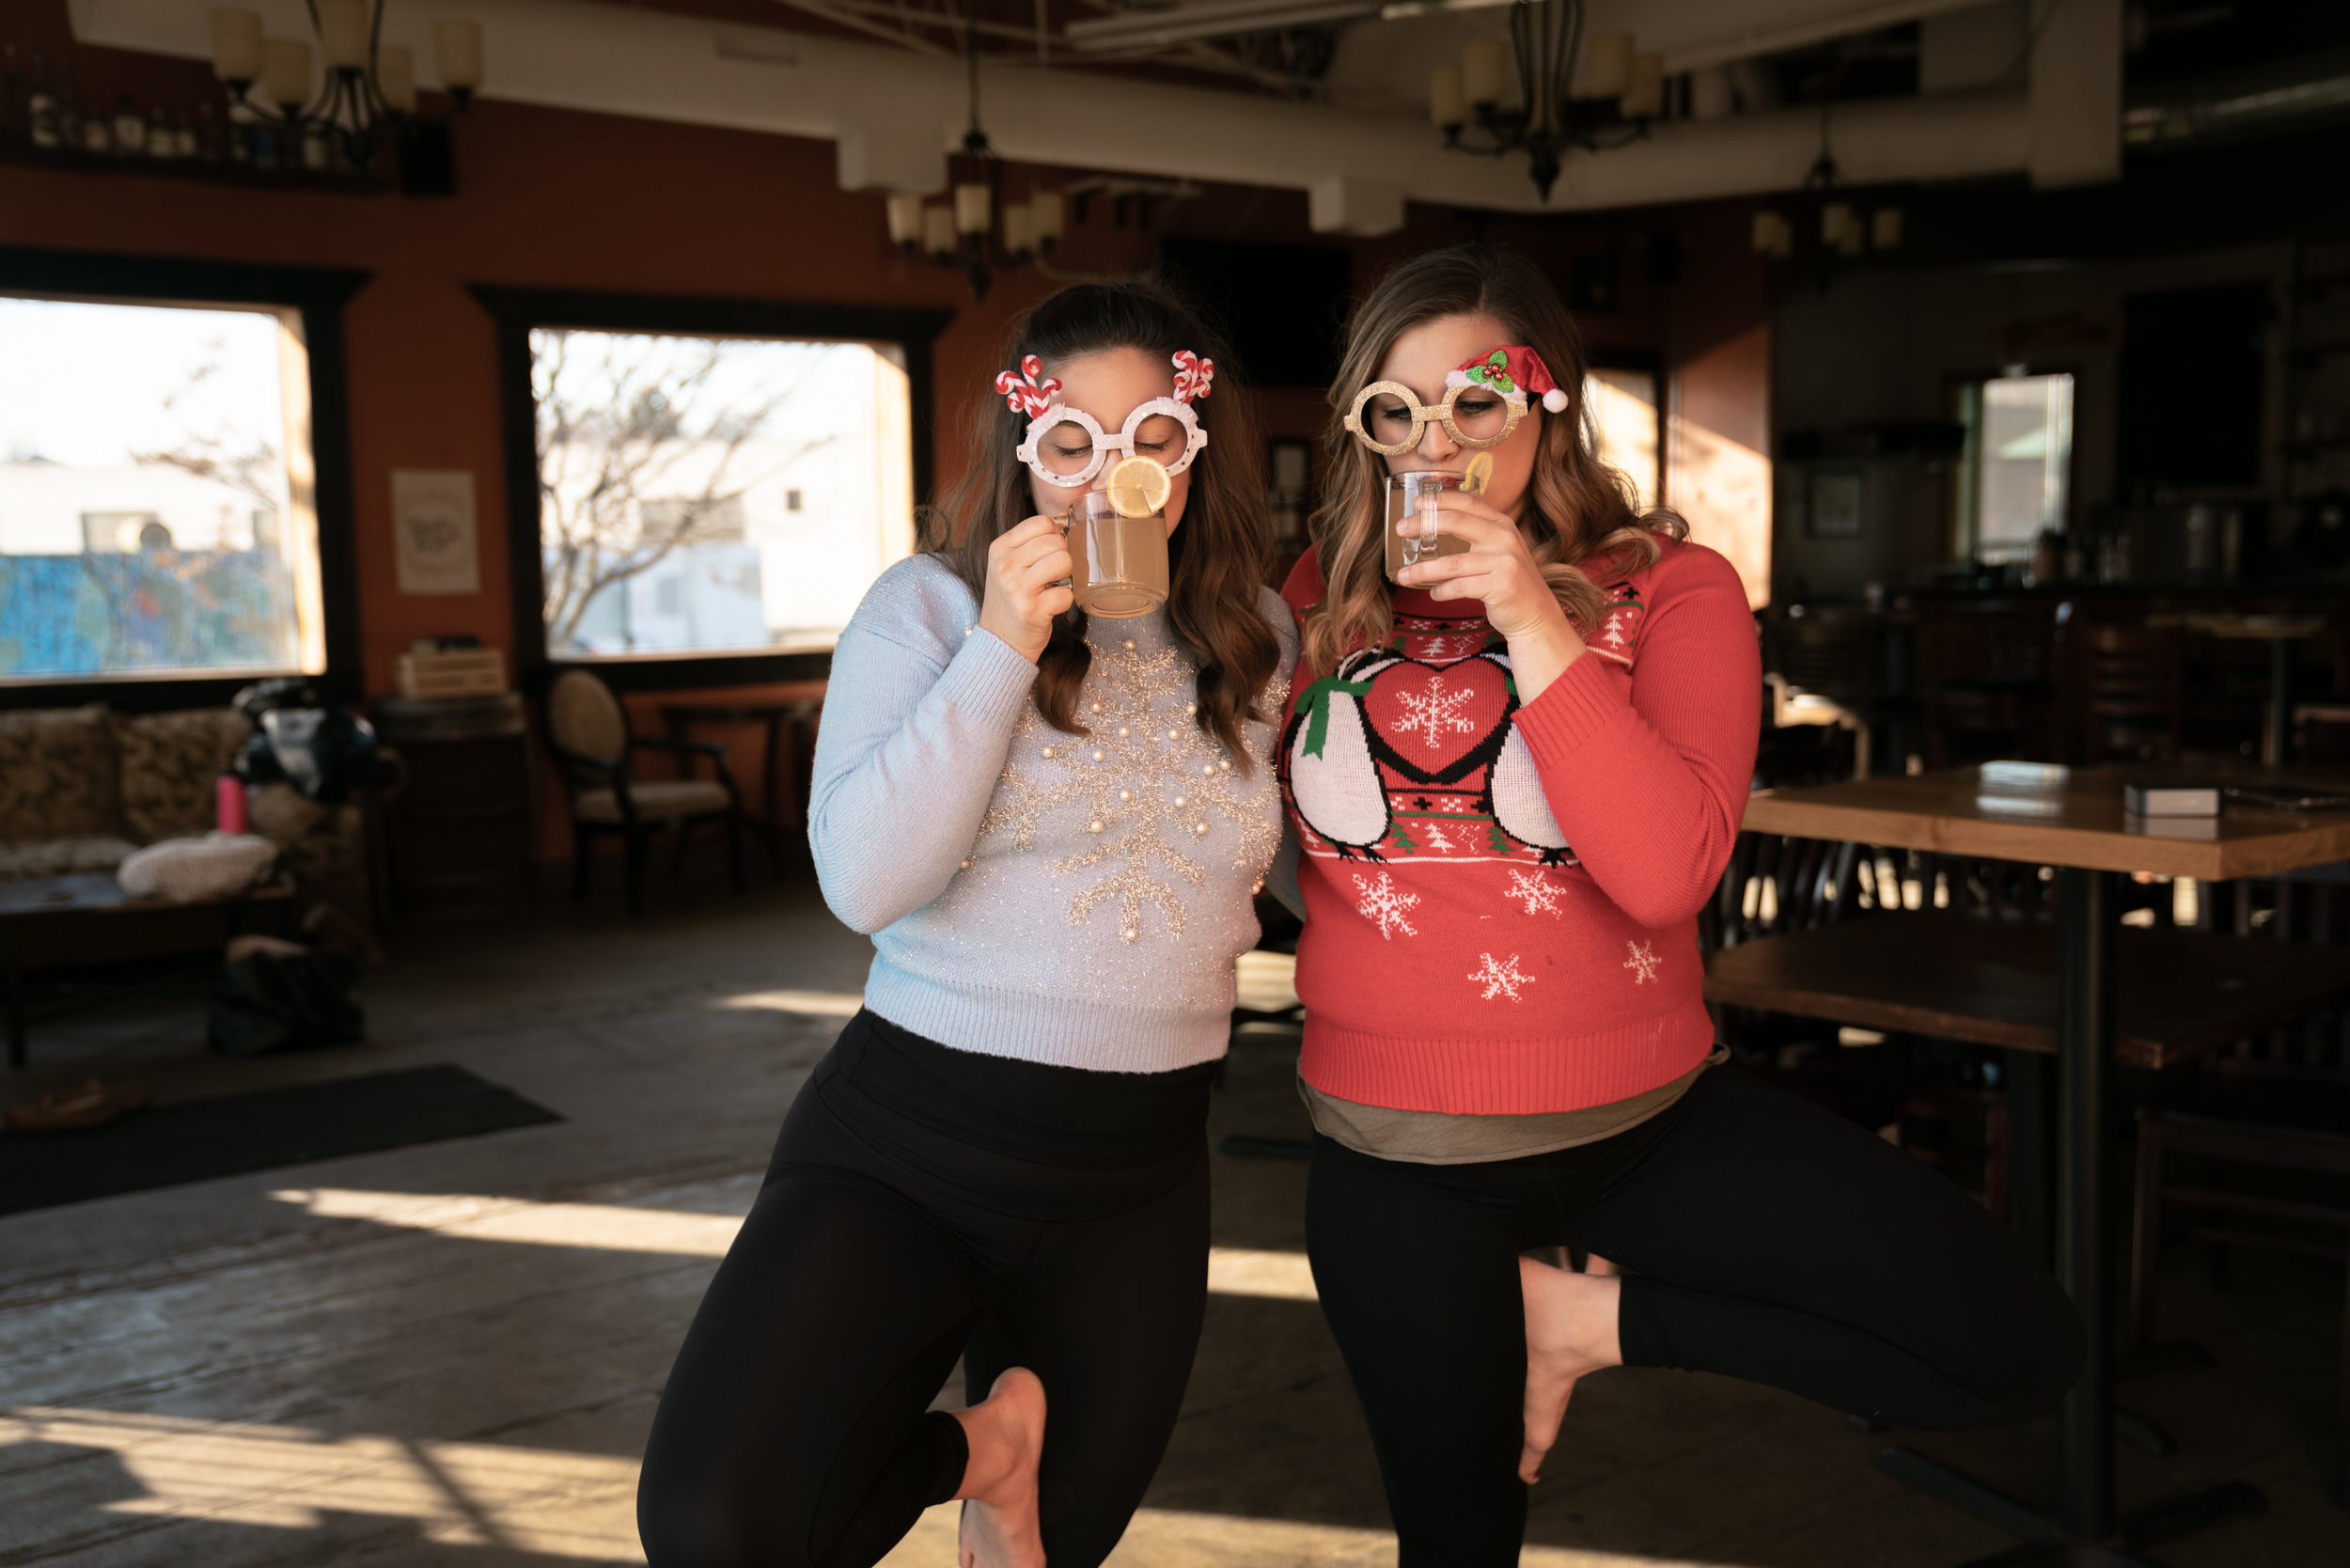 Come to our Ugly Sweater Christmas yoga class at  Du Nord ! Saturday, December 22 at 11:00 AM. Tickets available at  ombrewers.com .